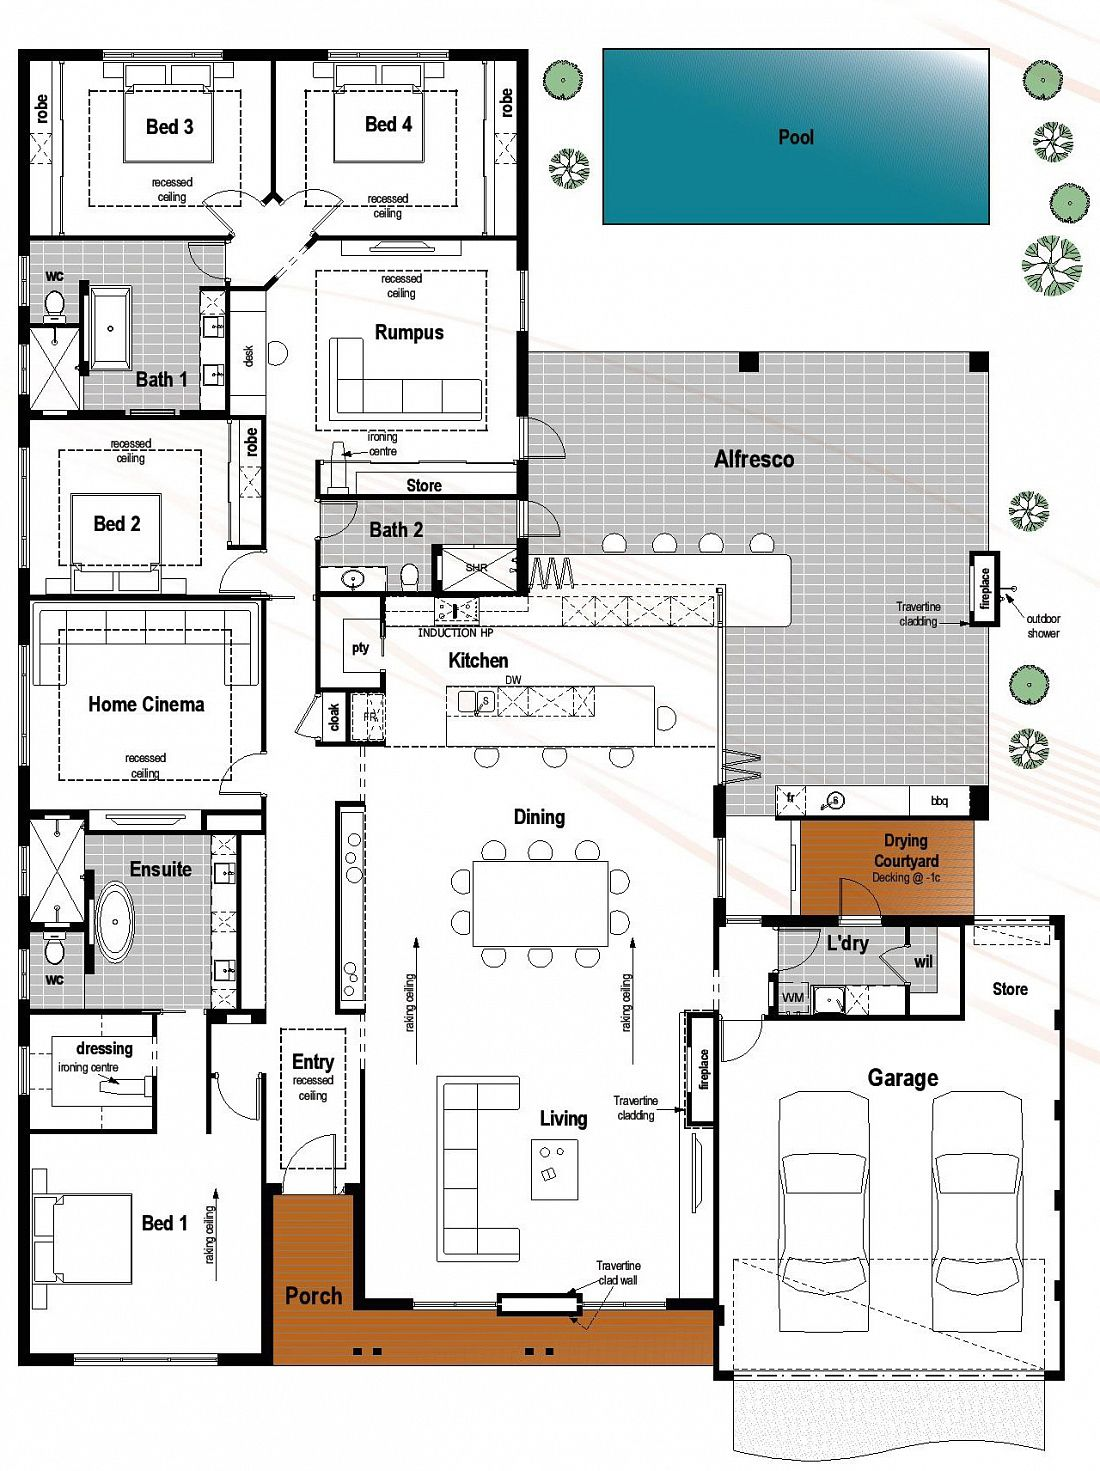 Floor Plan Friday 4 Bedroom 3 Bathroom With Modern Skillion Roof Layout Casa Planimetrie Di Case Planimetria Casa